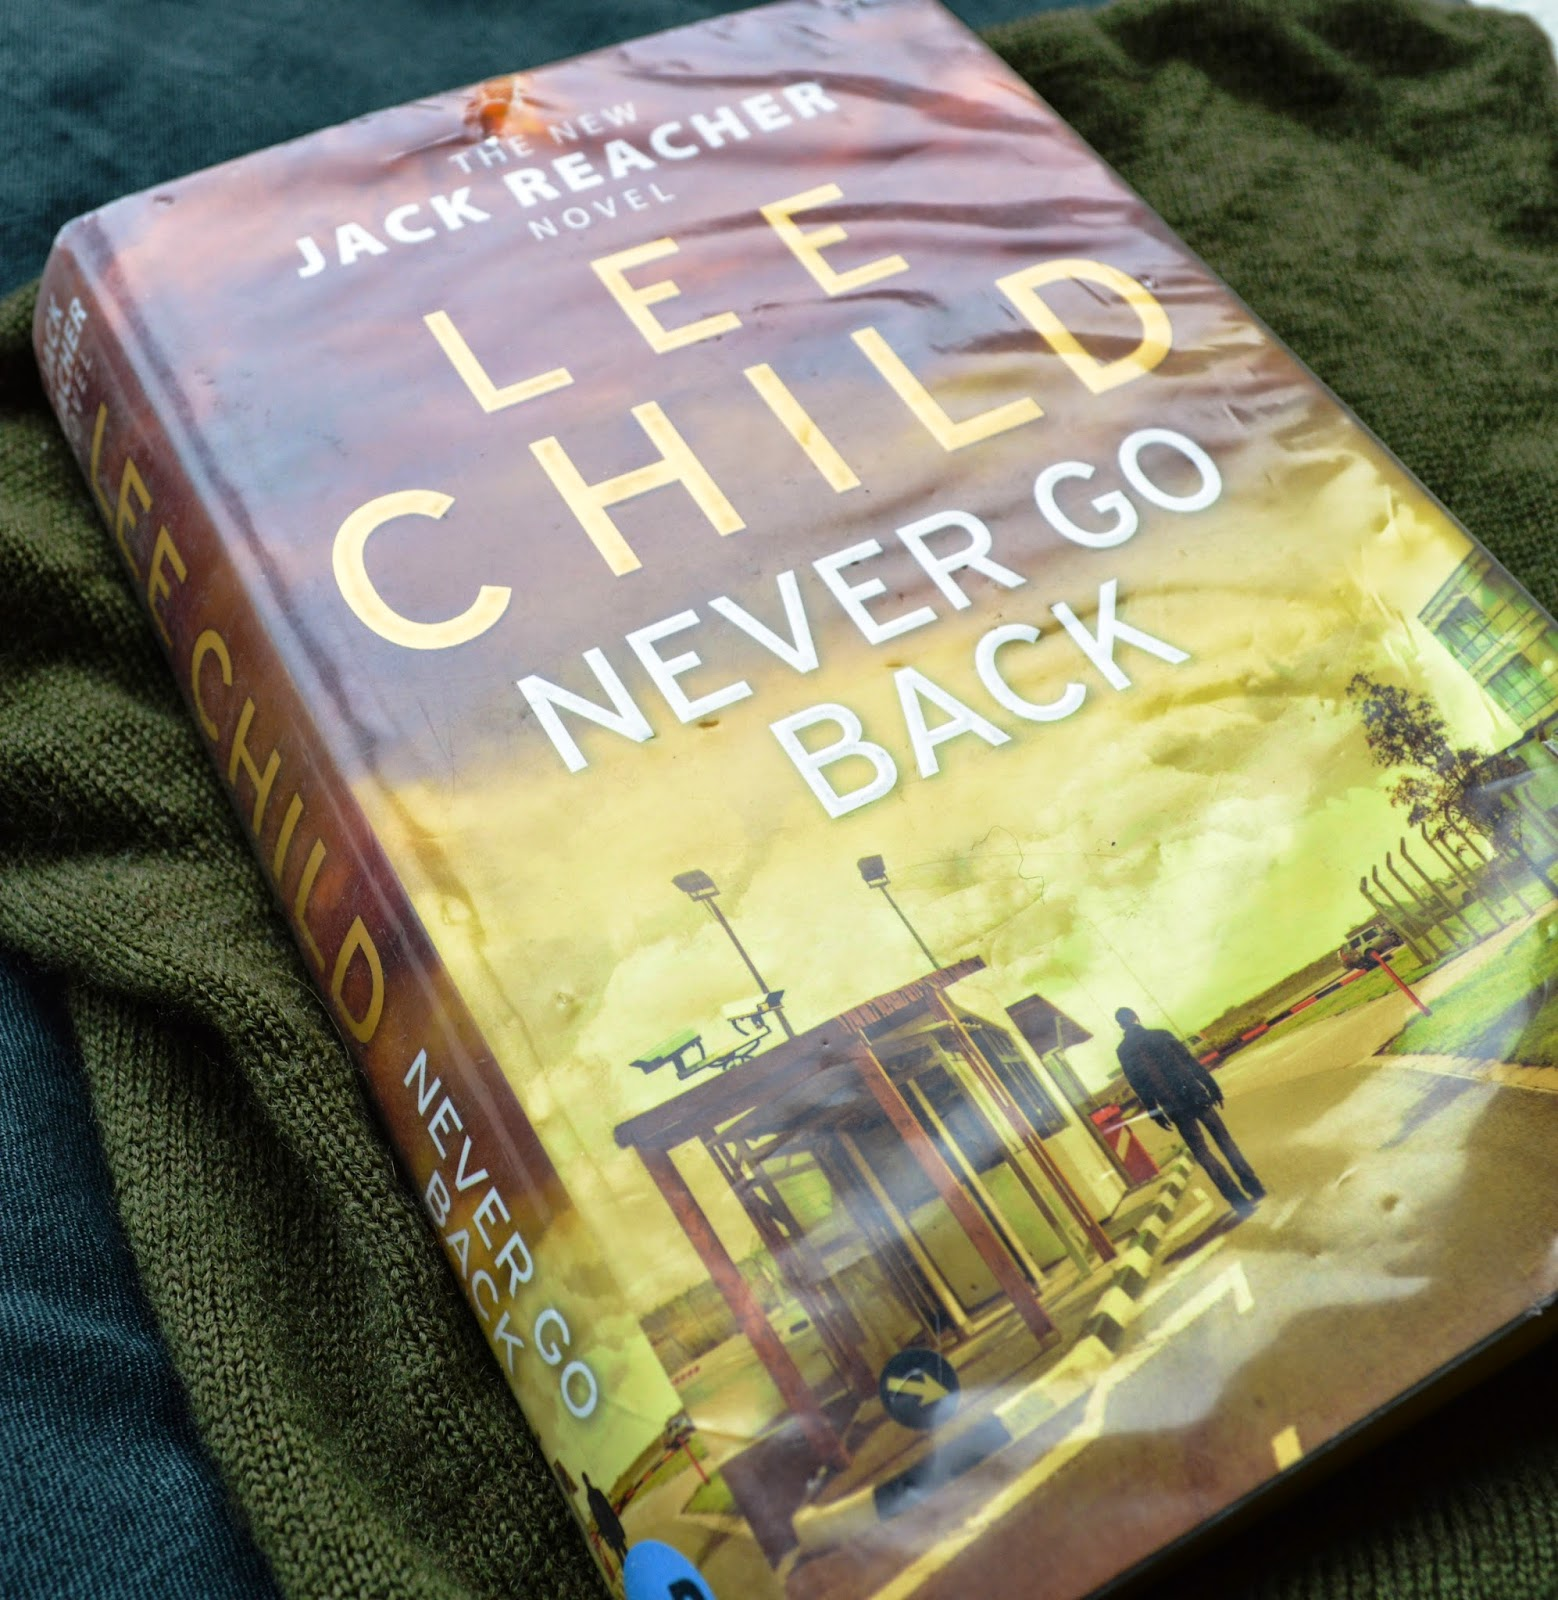 Lee Child, Never Go Back, hardback, book review, American Literature, ex-military police, 18th, Jack Reacher, series, book blog,